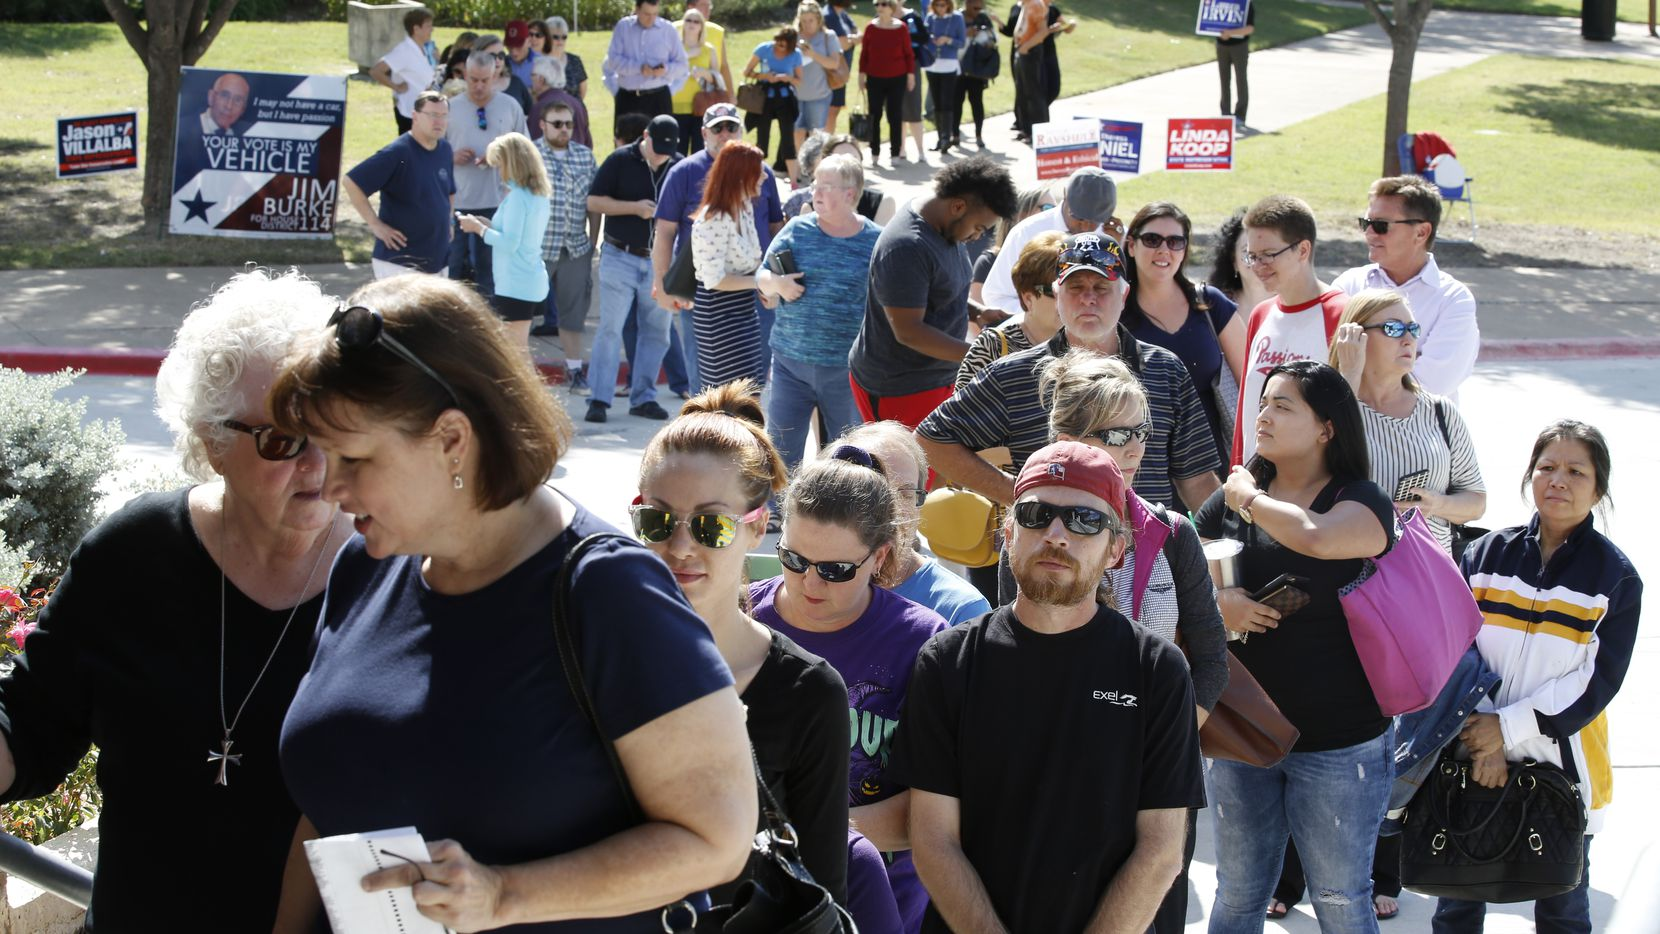 People wait in line to vote at Fretz Park Dallas Public Library in Dallas on Monday, October 24, 2016 on the first day of the early voting period in Texas.